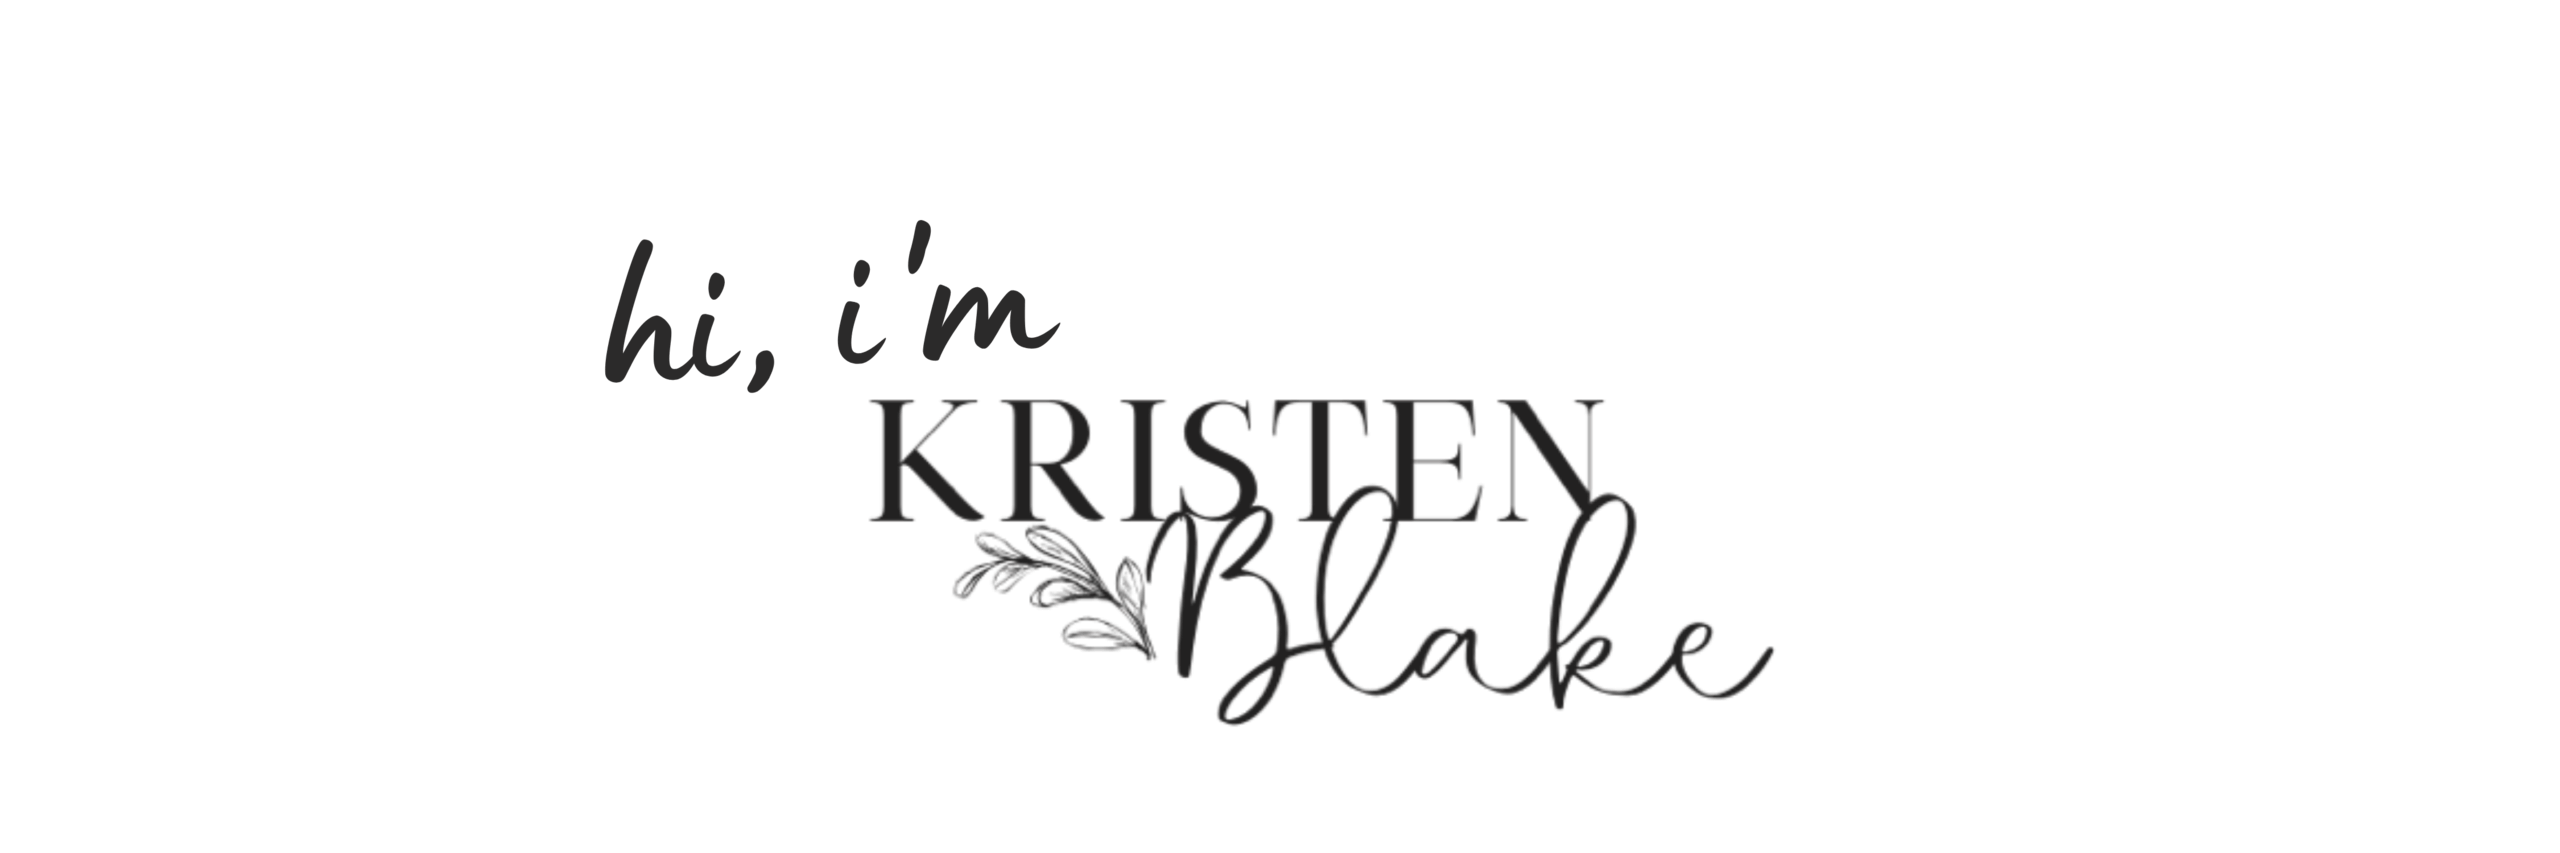 Introduction for holistic nutritionist Kristen Blake.